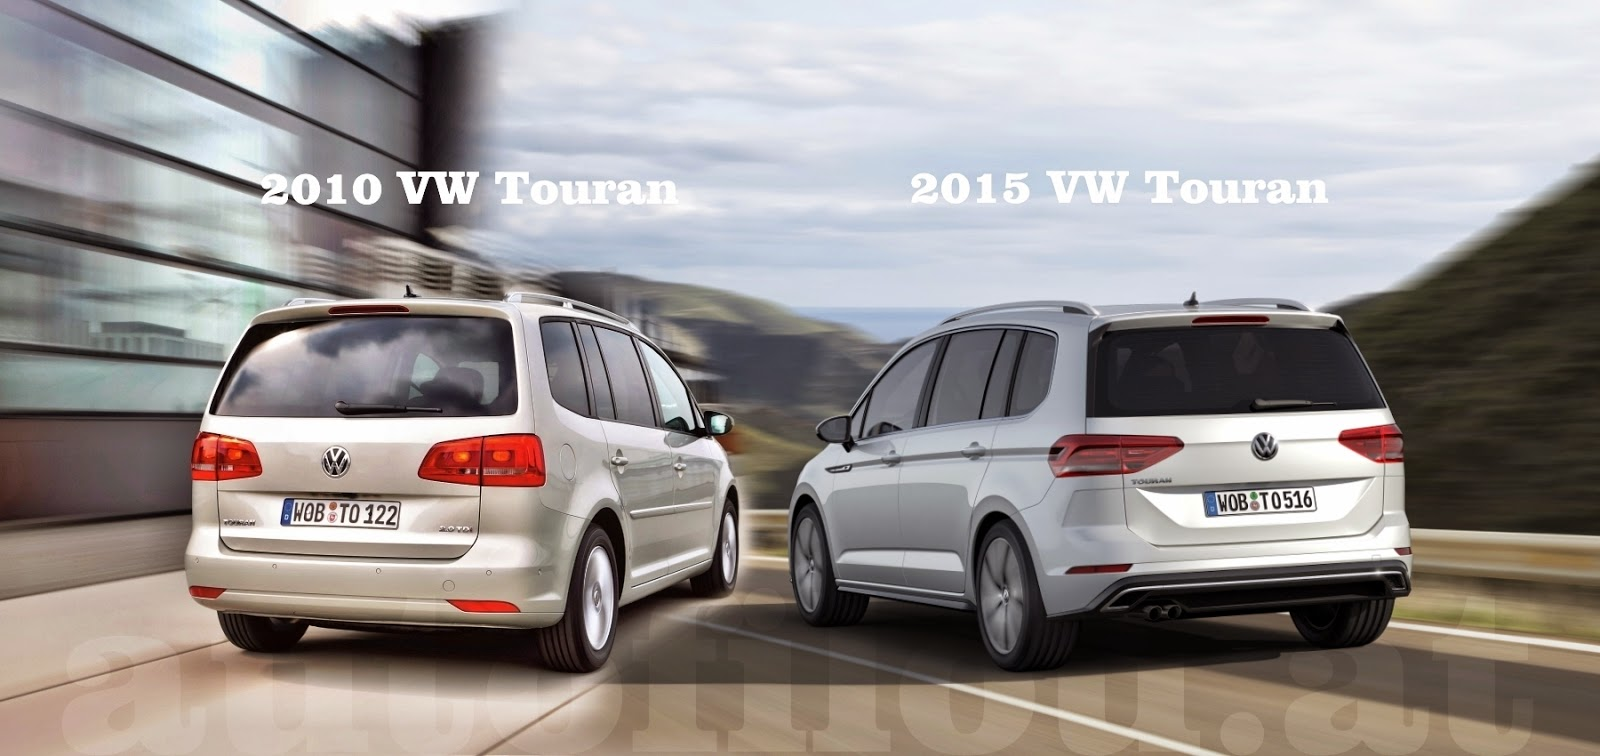 vergleich 2010 vs 2015 vw touran. Black Bedroom Furniture Sets. Home Design Ideas